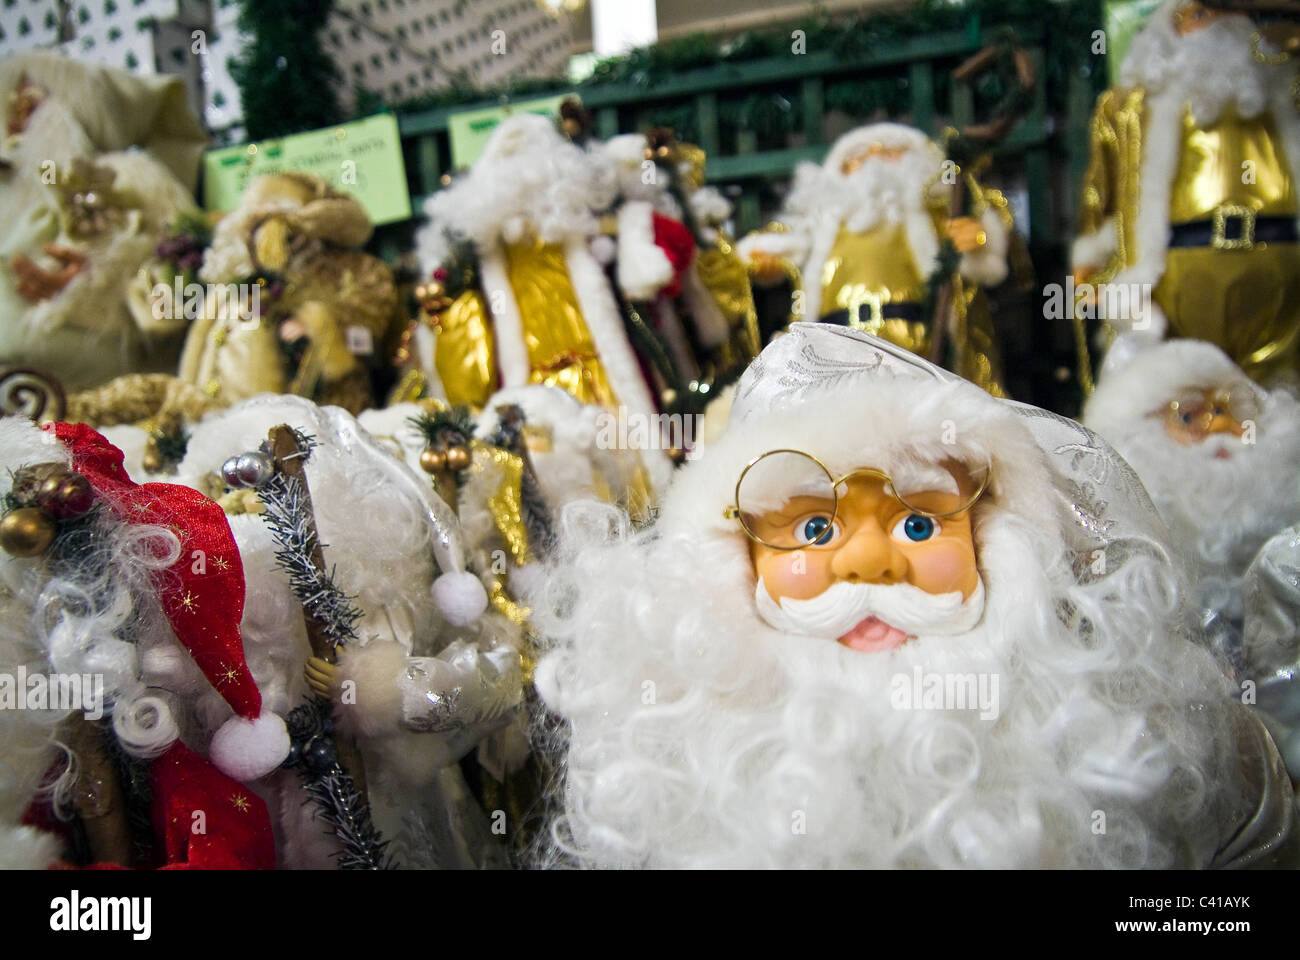 tacky christmas decorations for sale in a gardening centre stock image